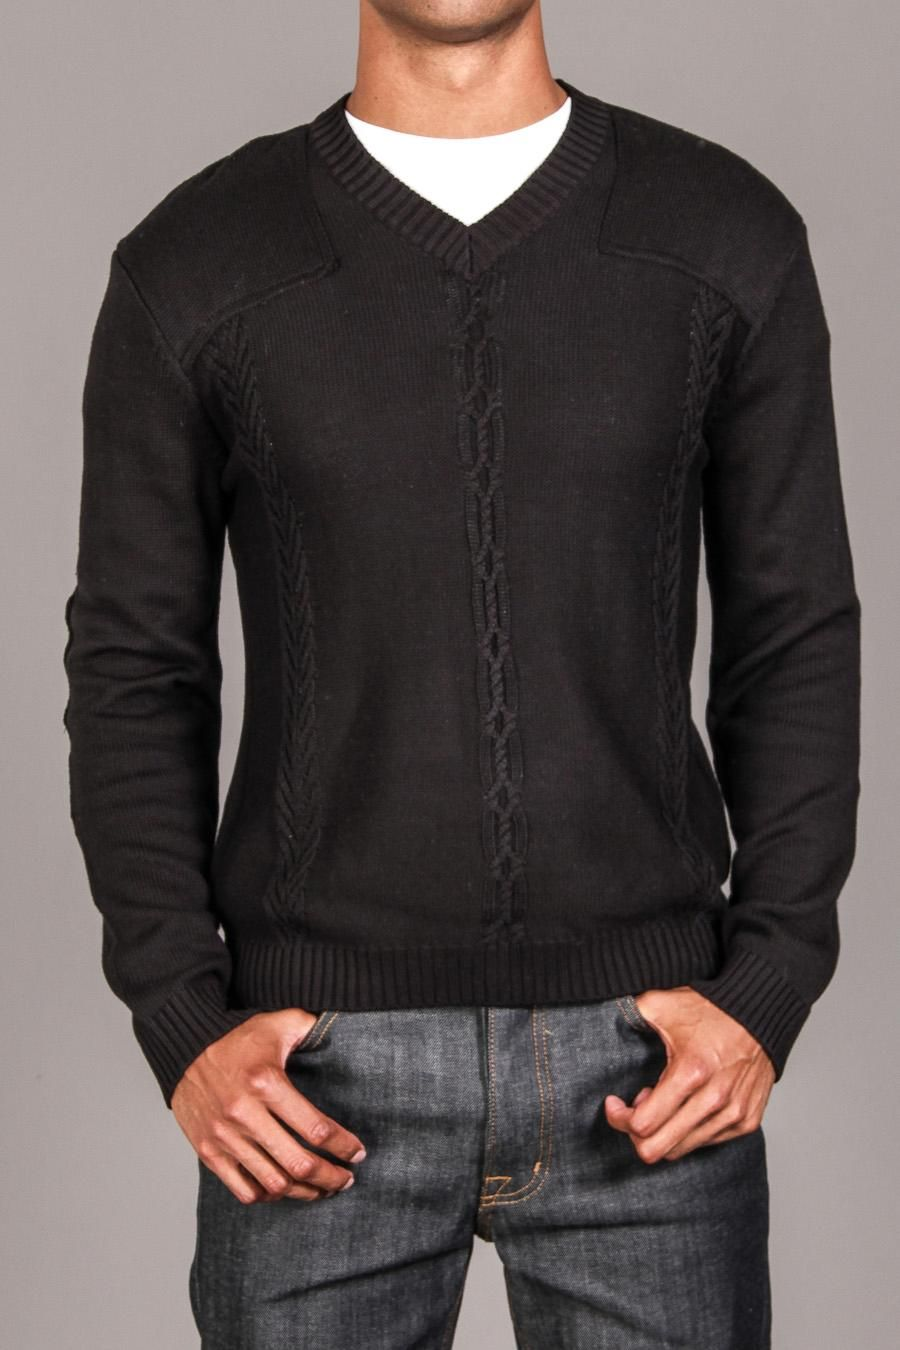 Black Cable Knit Sweater For Dudes Pinterest Cable Knit